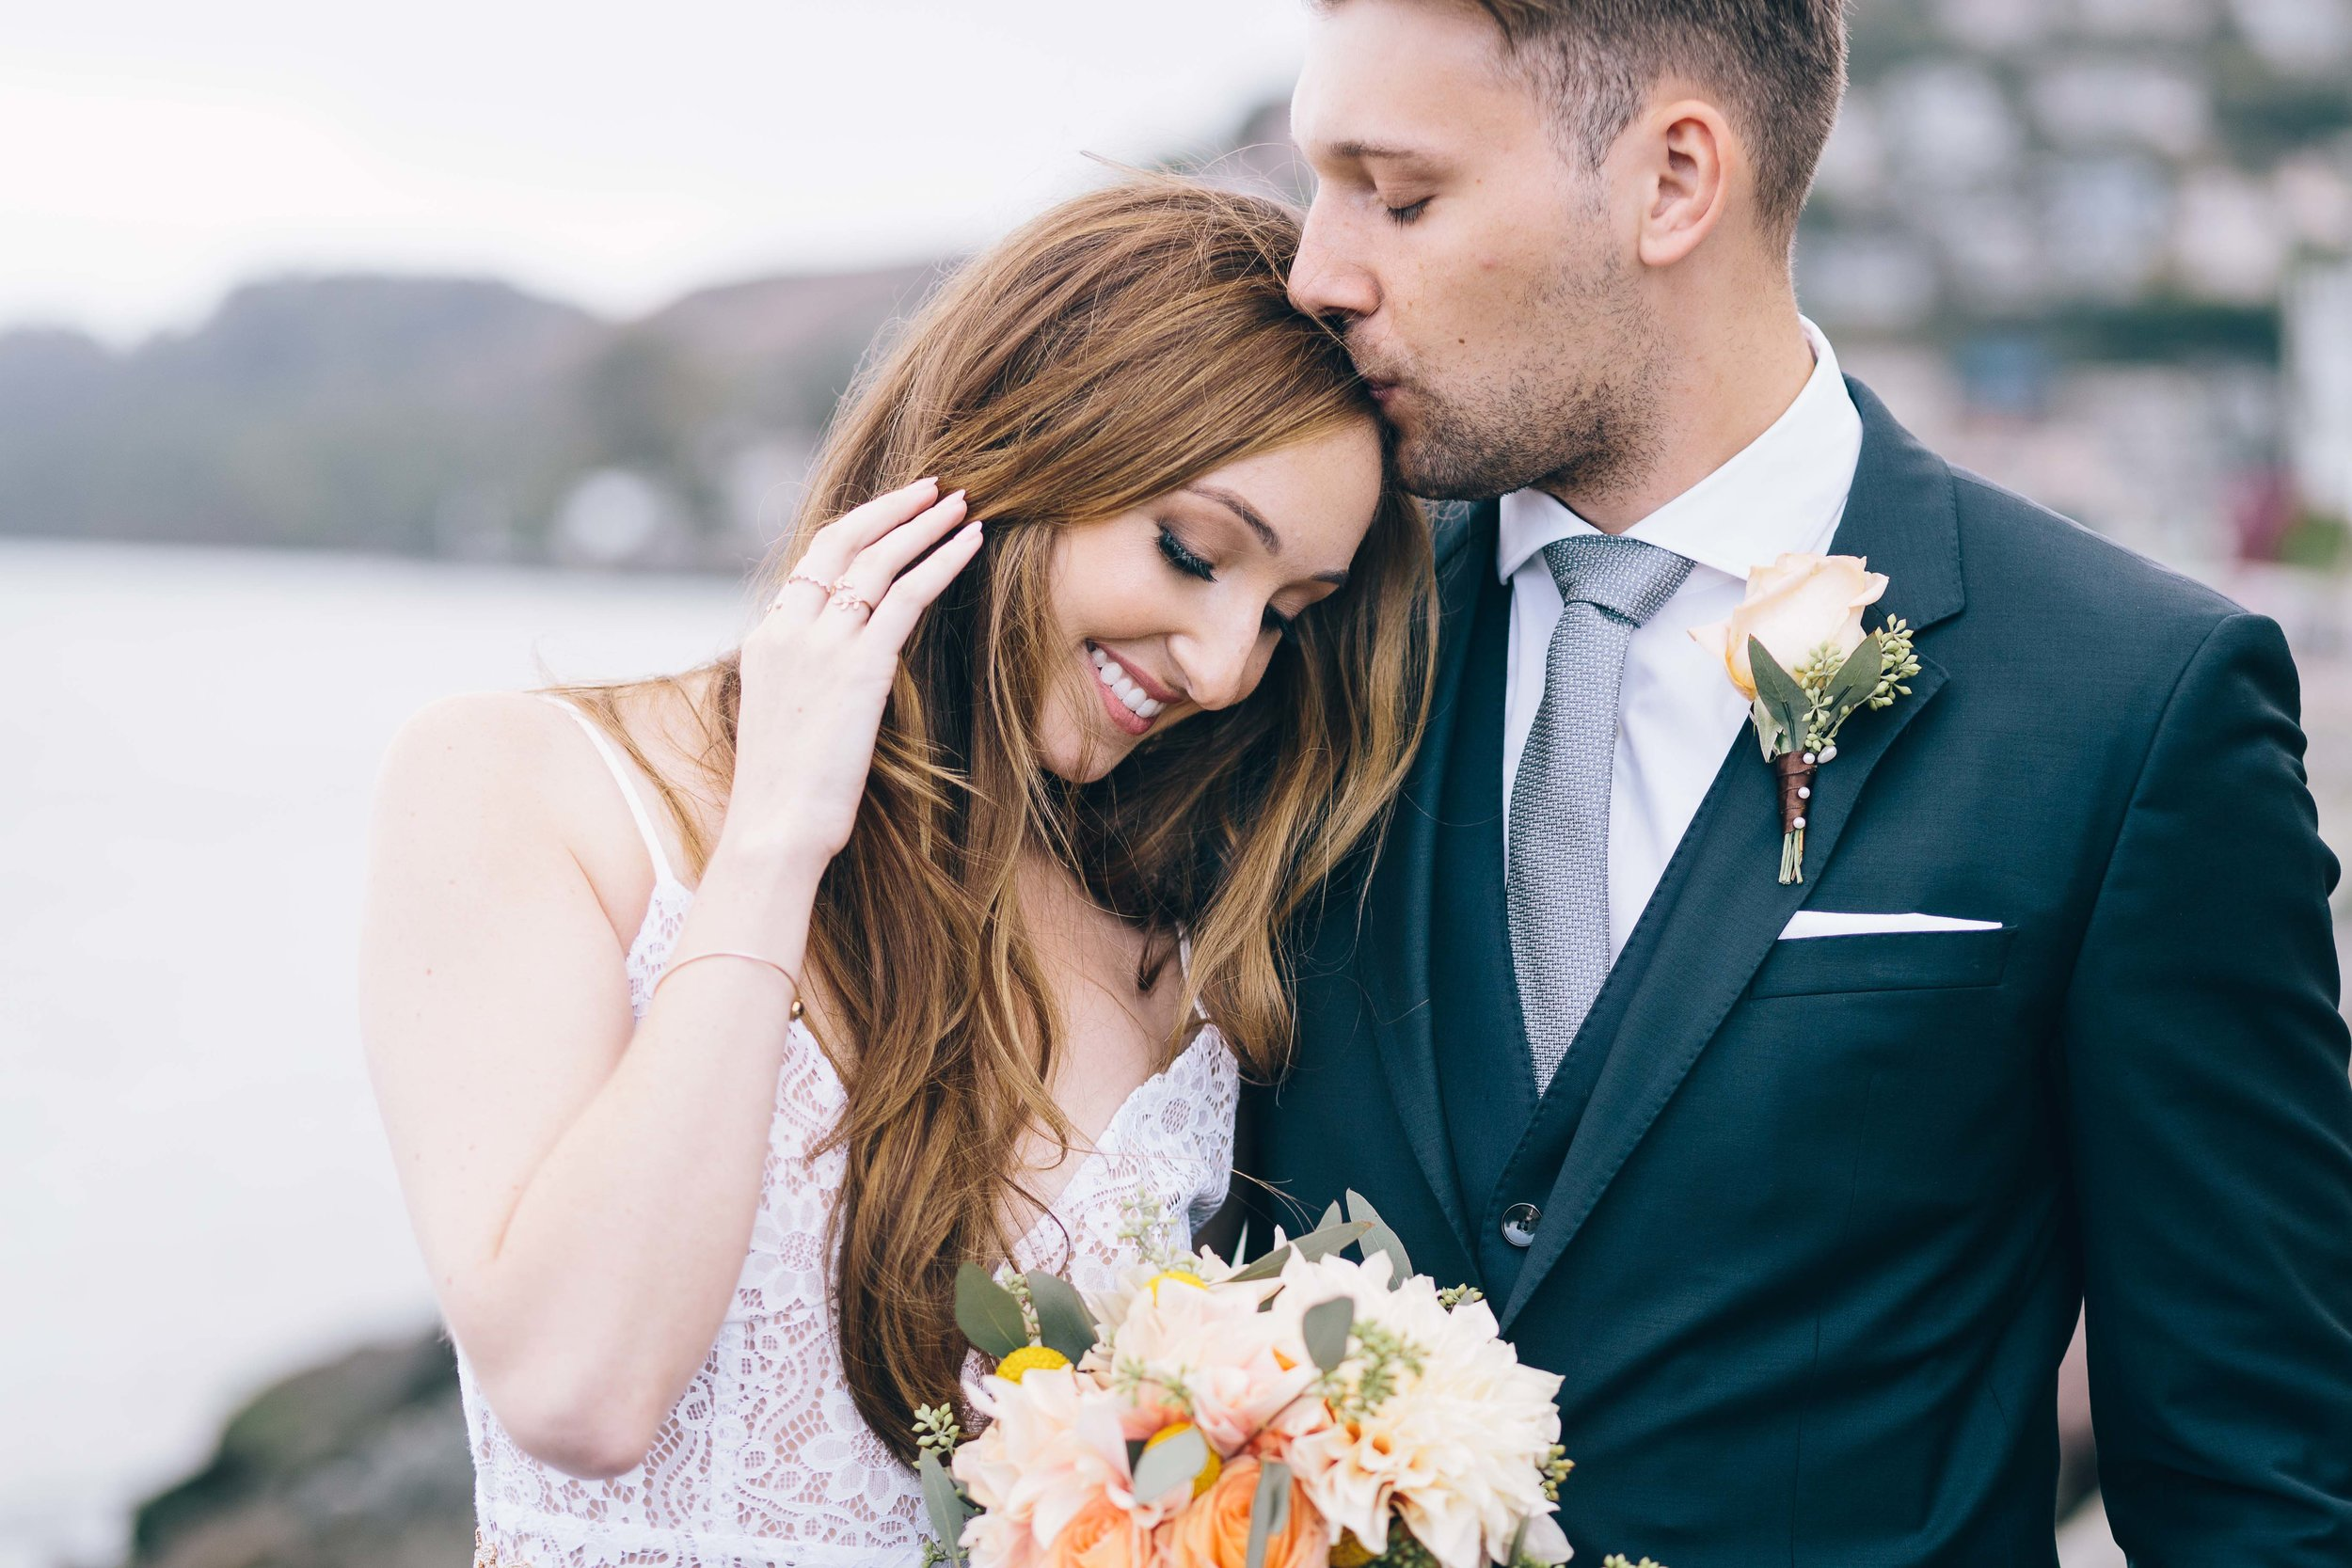 Sausalito Wedding at Ondine Events by JBJ Pictures - Photographer in Sausalito and Marin County - Engagment & Wedding Photography in San Francisco, Marin, Sonoma, and Napa (55).jpg